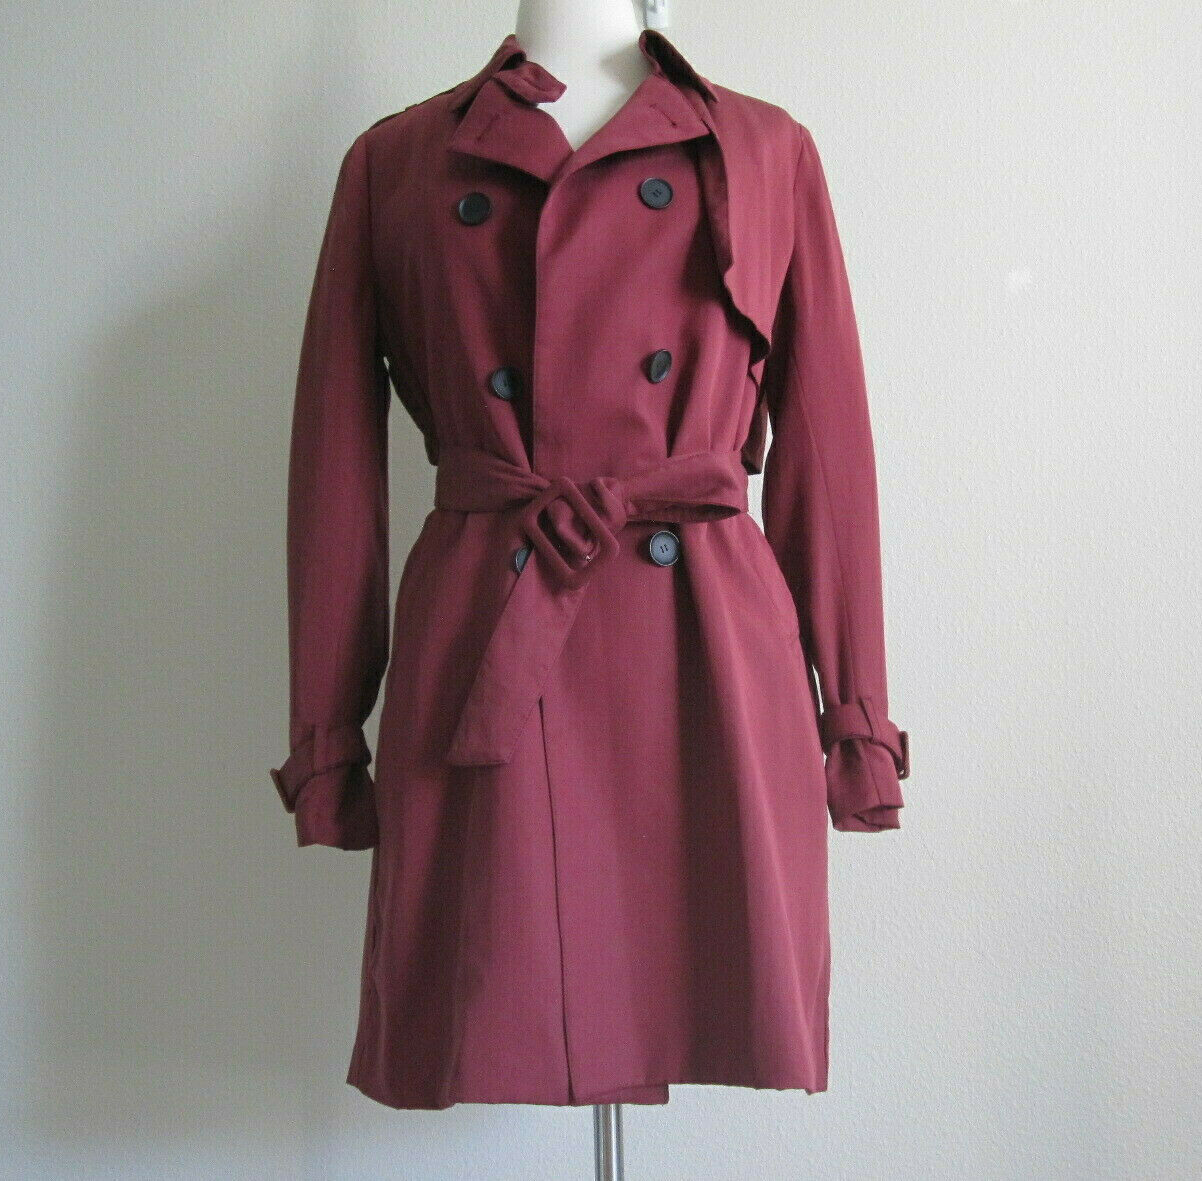 Burgundy Womens Cotton Trenchcoat Trench Coat Military Style Double Breasted